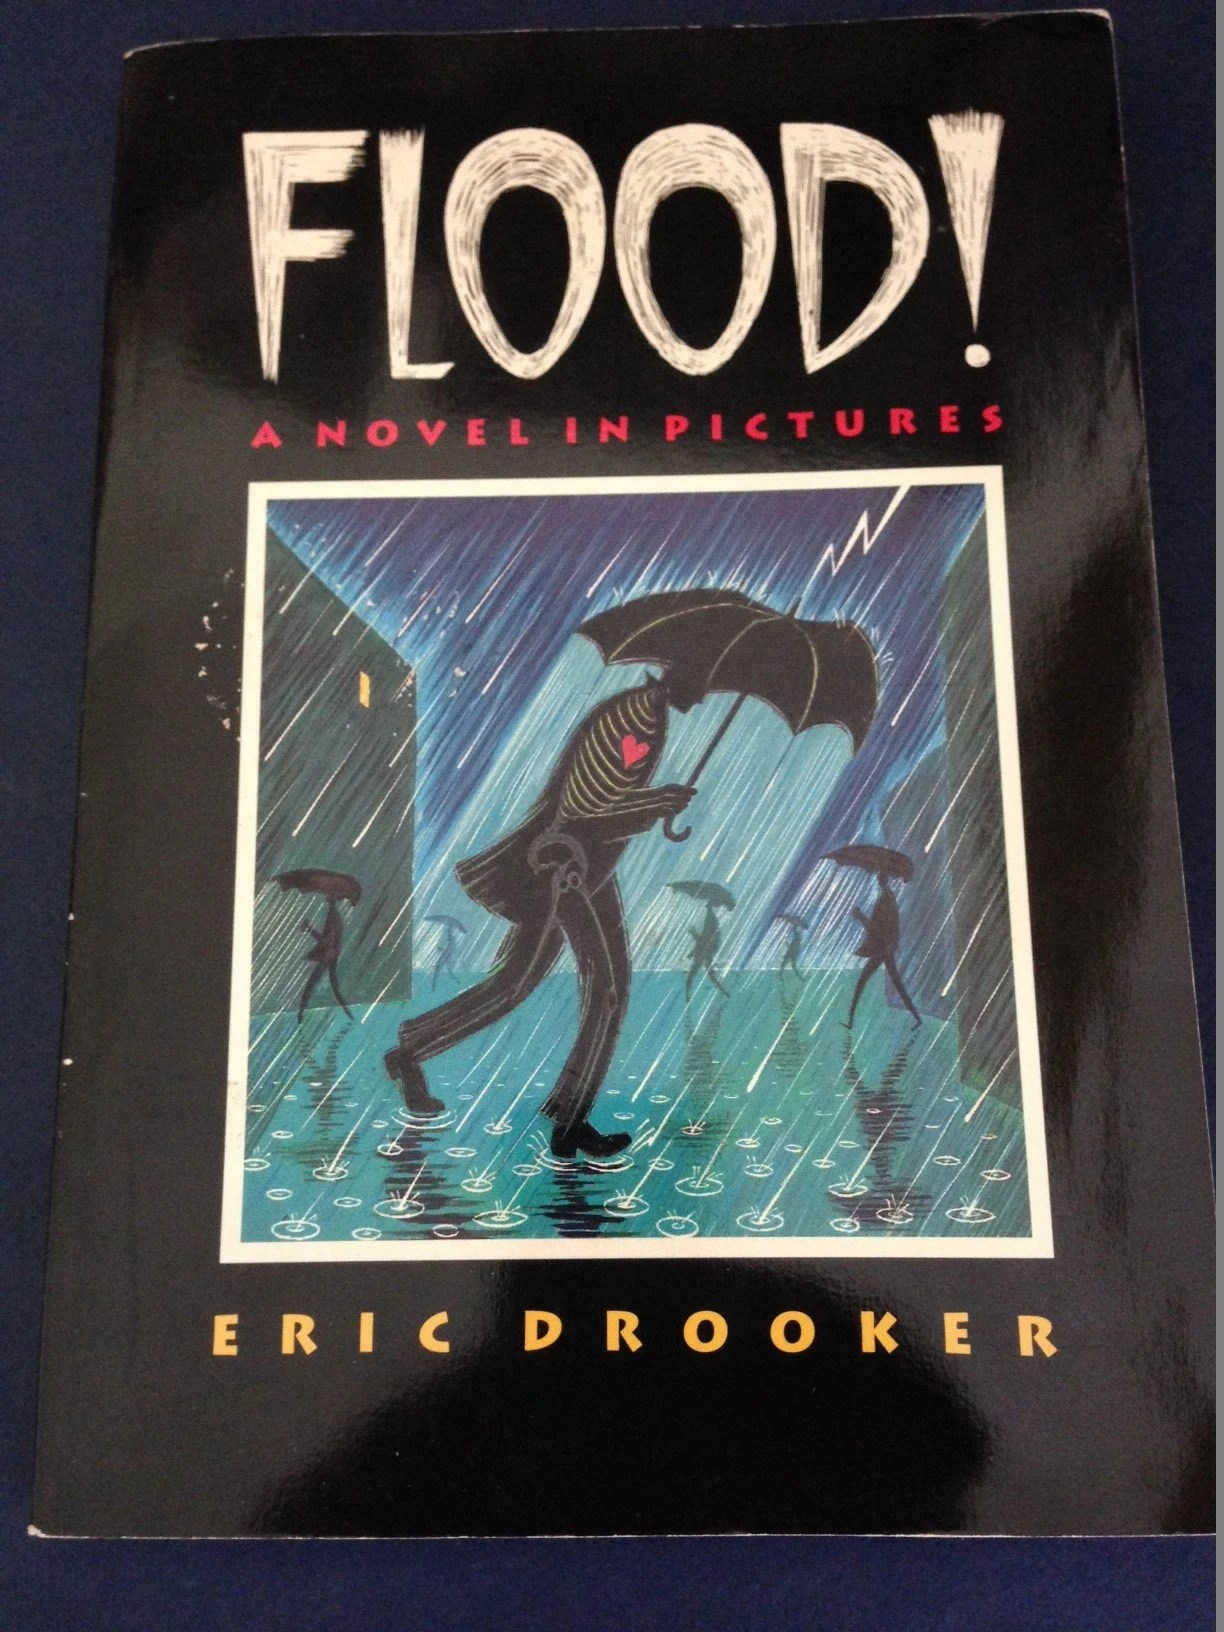 Art Of Eric Drooker Signed Eric Drooker Flood A Novel In Pictures Graphic Novel New York Signed Art Book